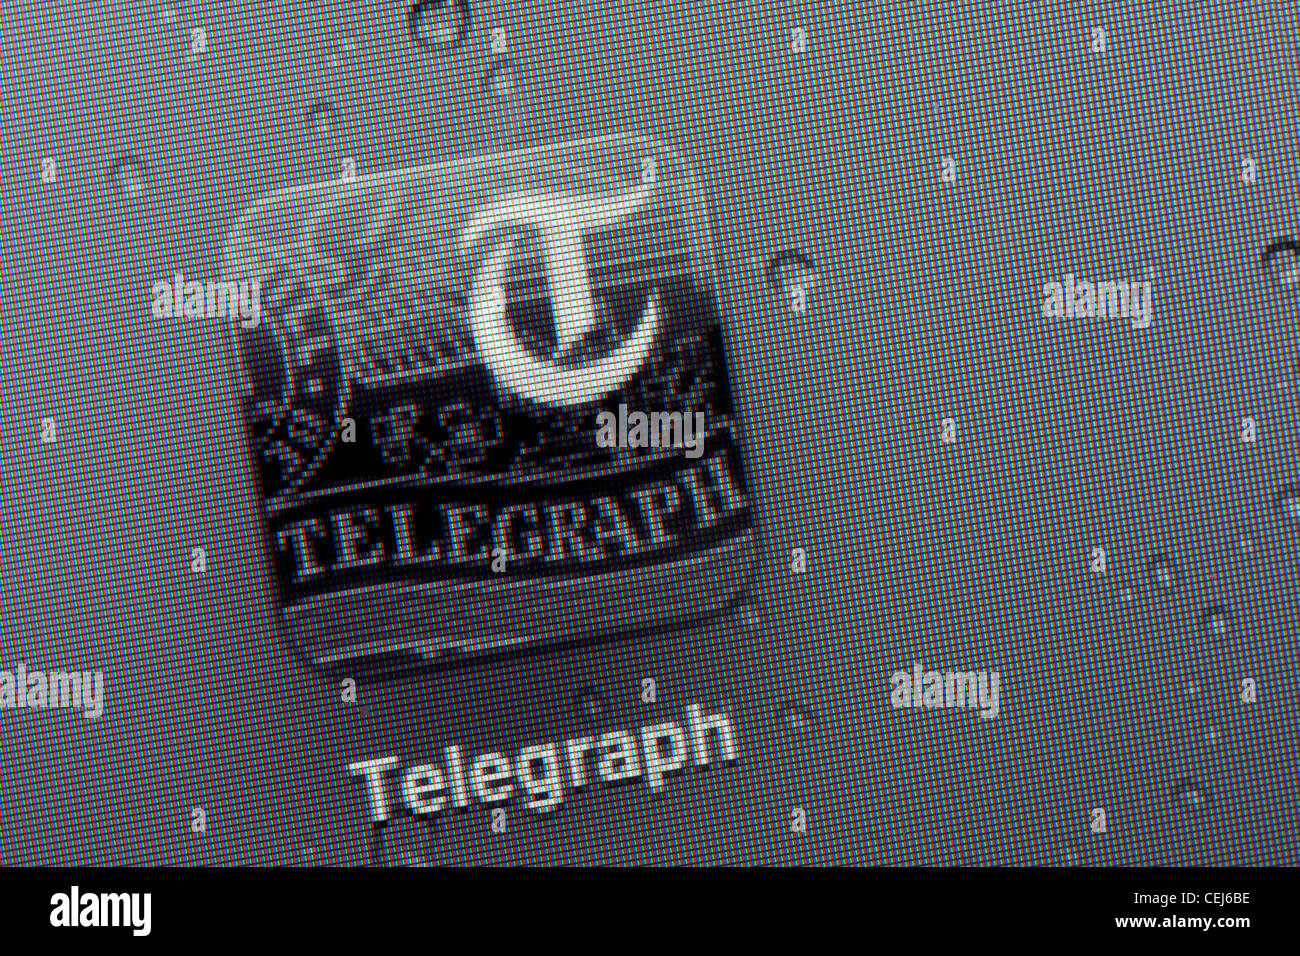 Close up of icon for the Daily Telegraph newspaper app on an iPad - Stock Image & Telegraph Newspaper Stock Photos u0026 Telegraph Newspaper Stock ... 25forcollege.com